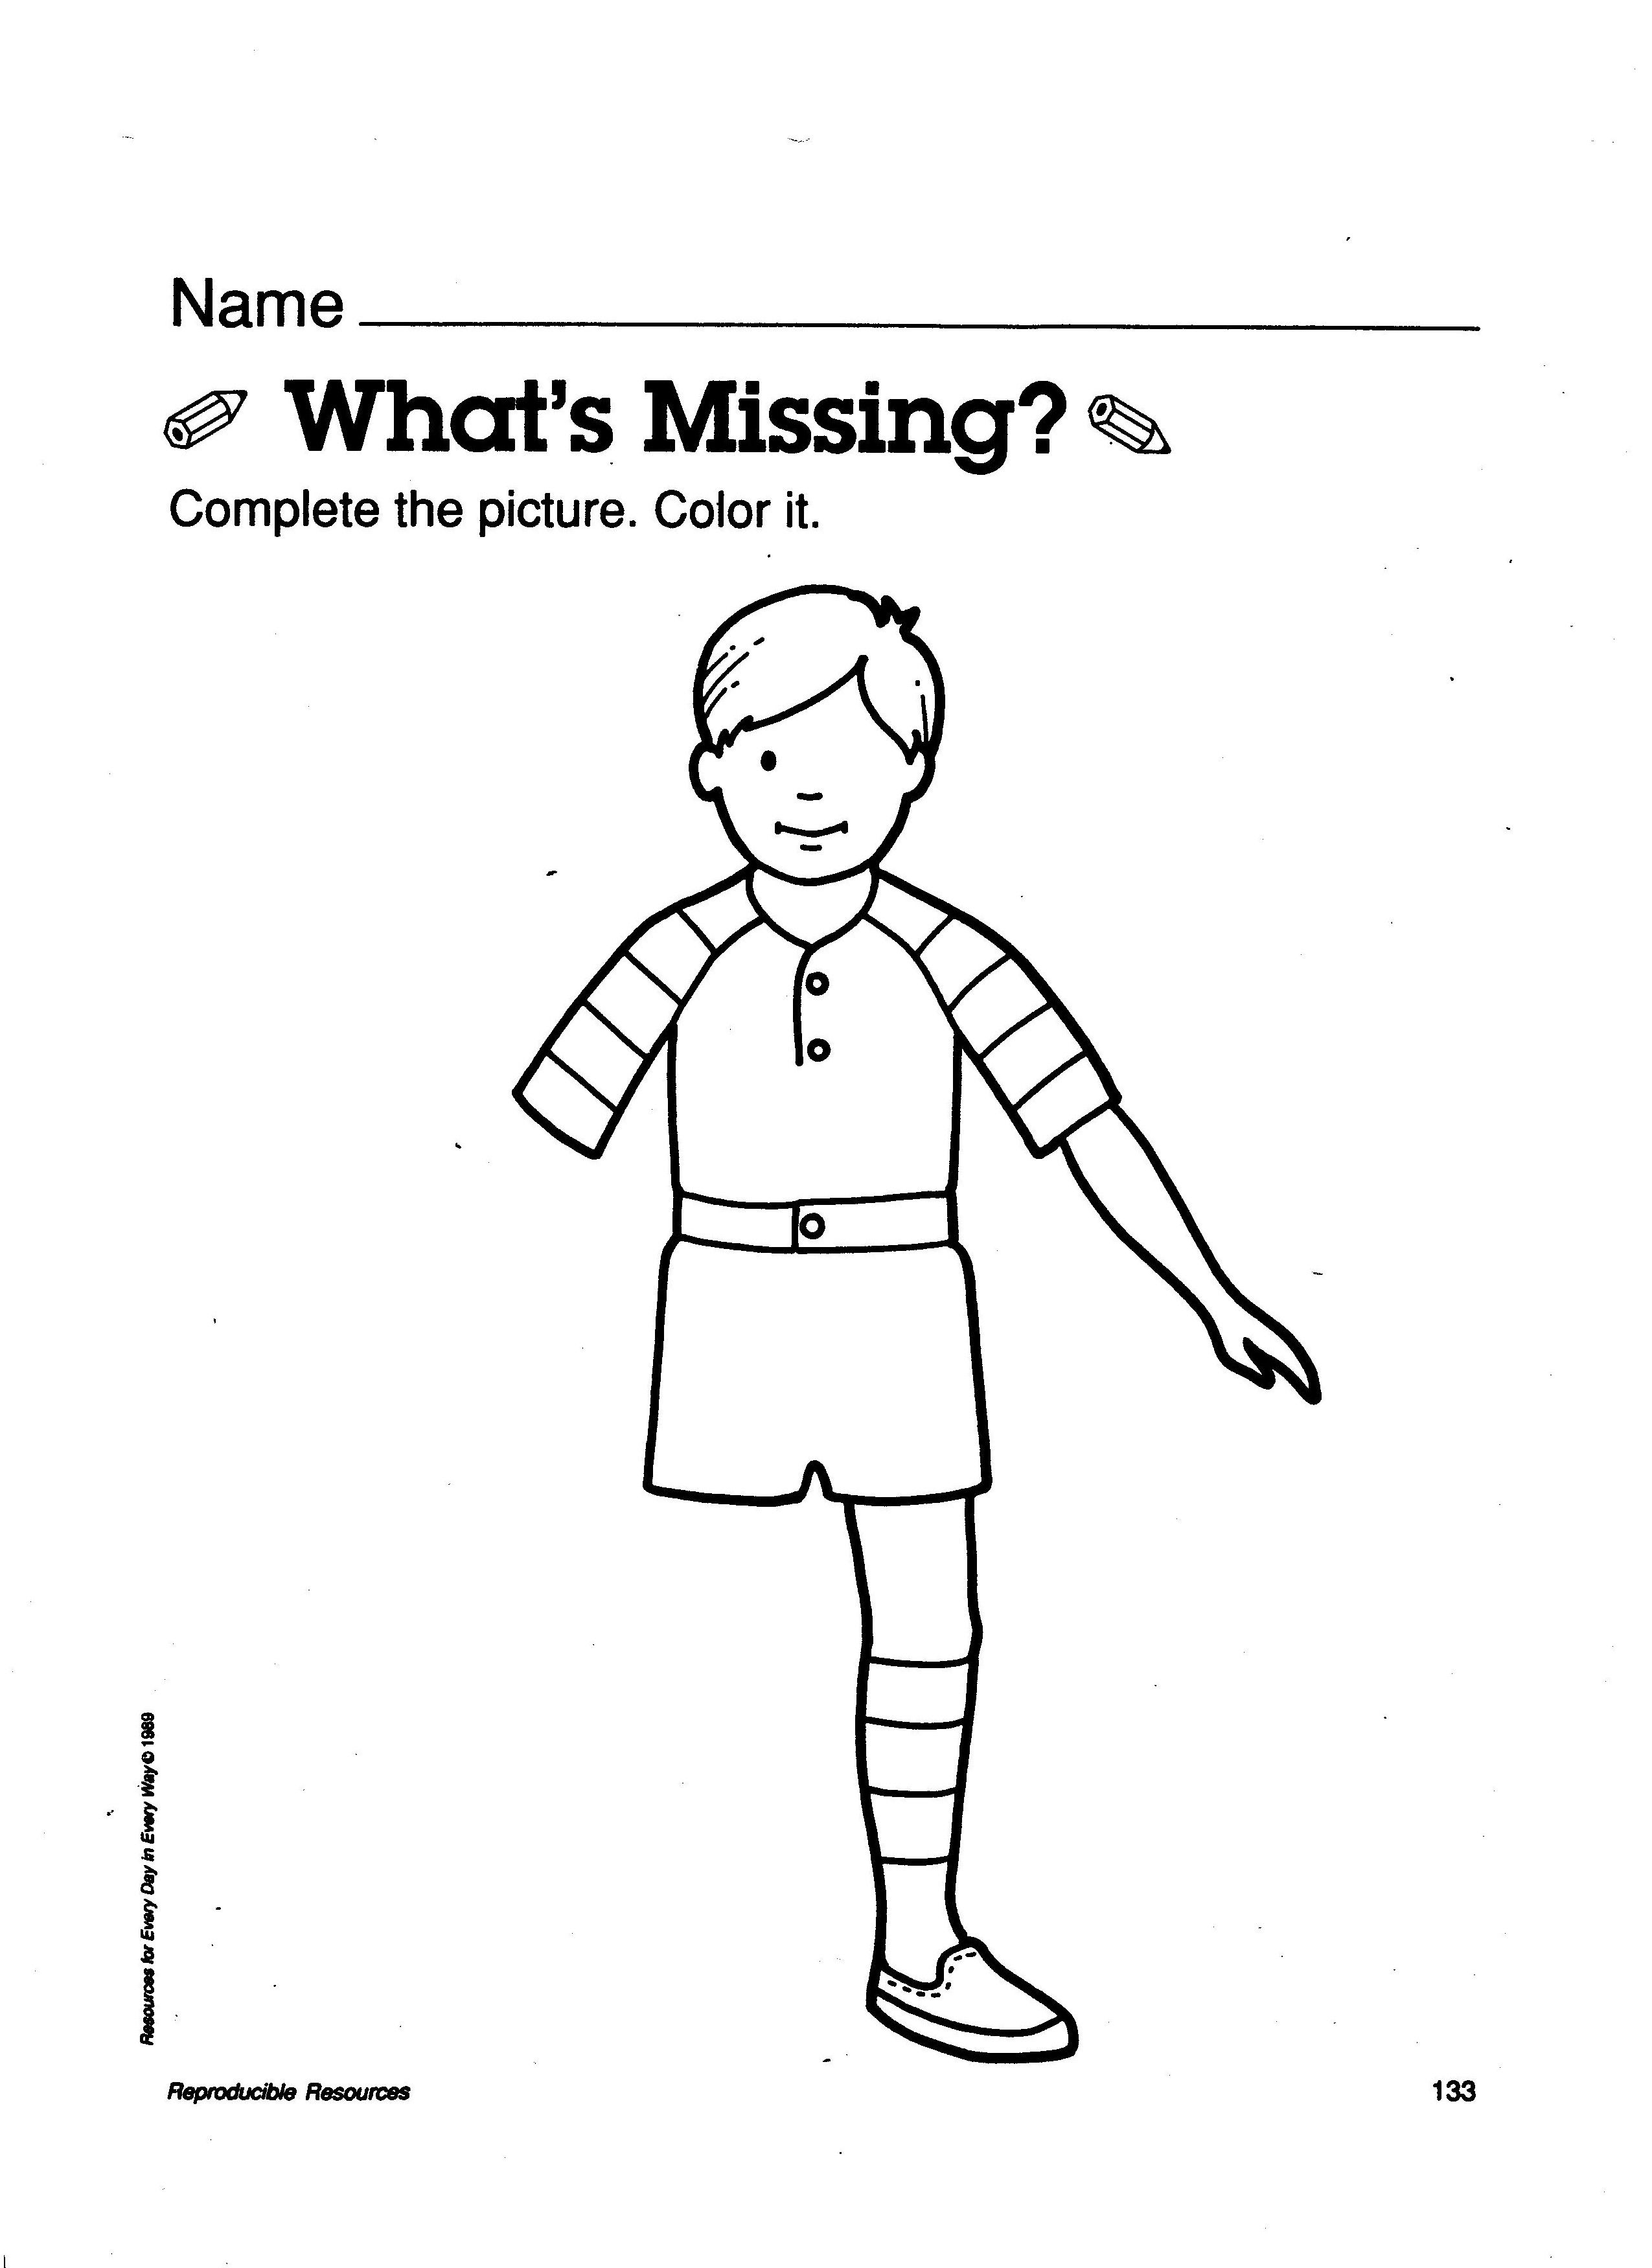 Body Awareness Whats Missing Worksheet Preschool Worksheets